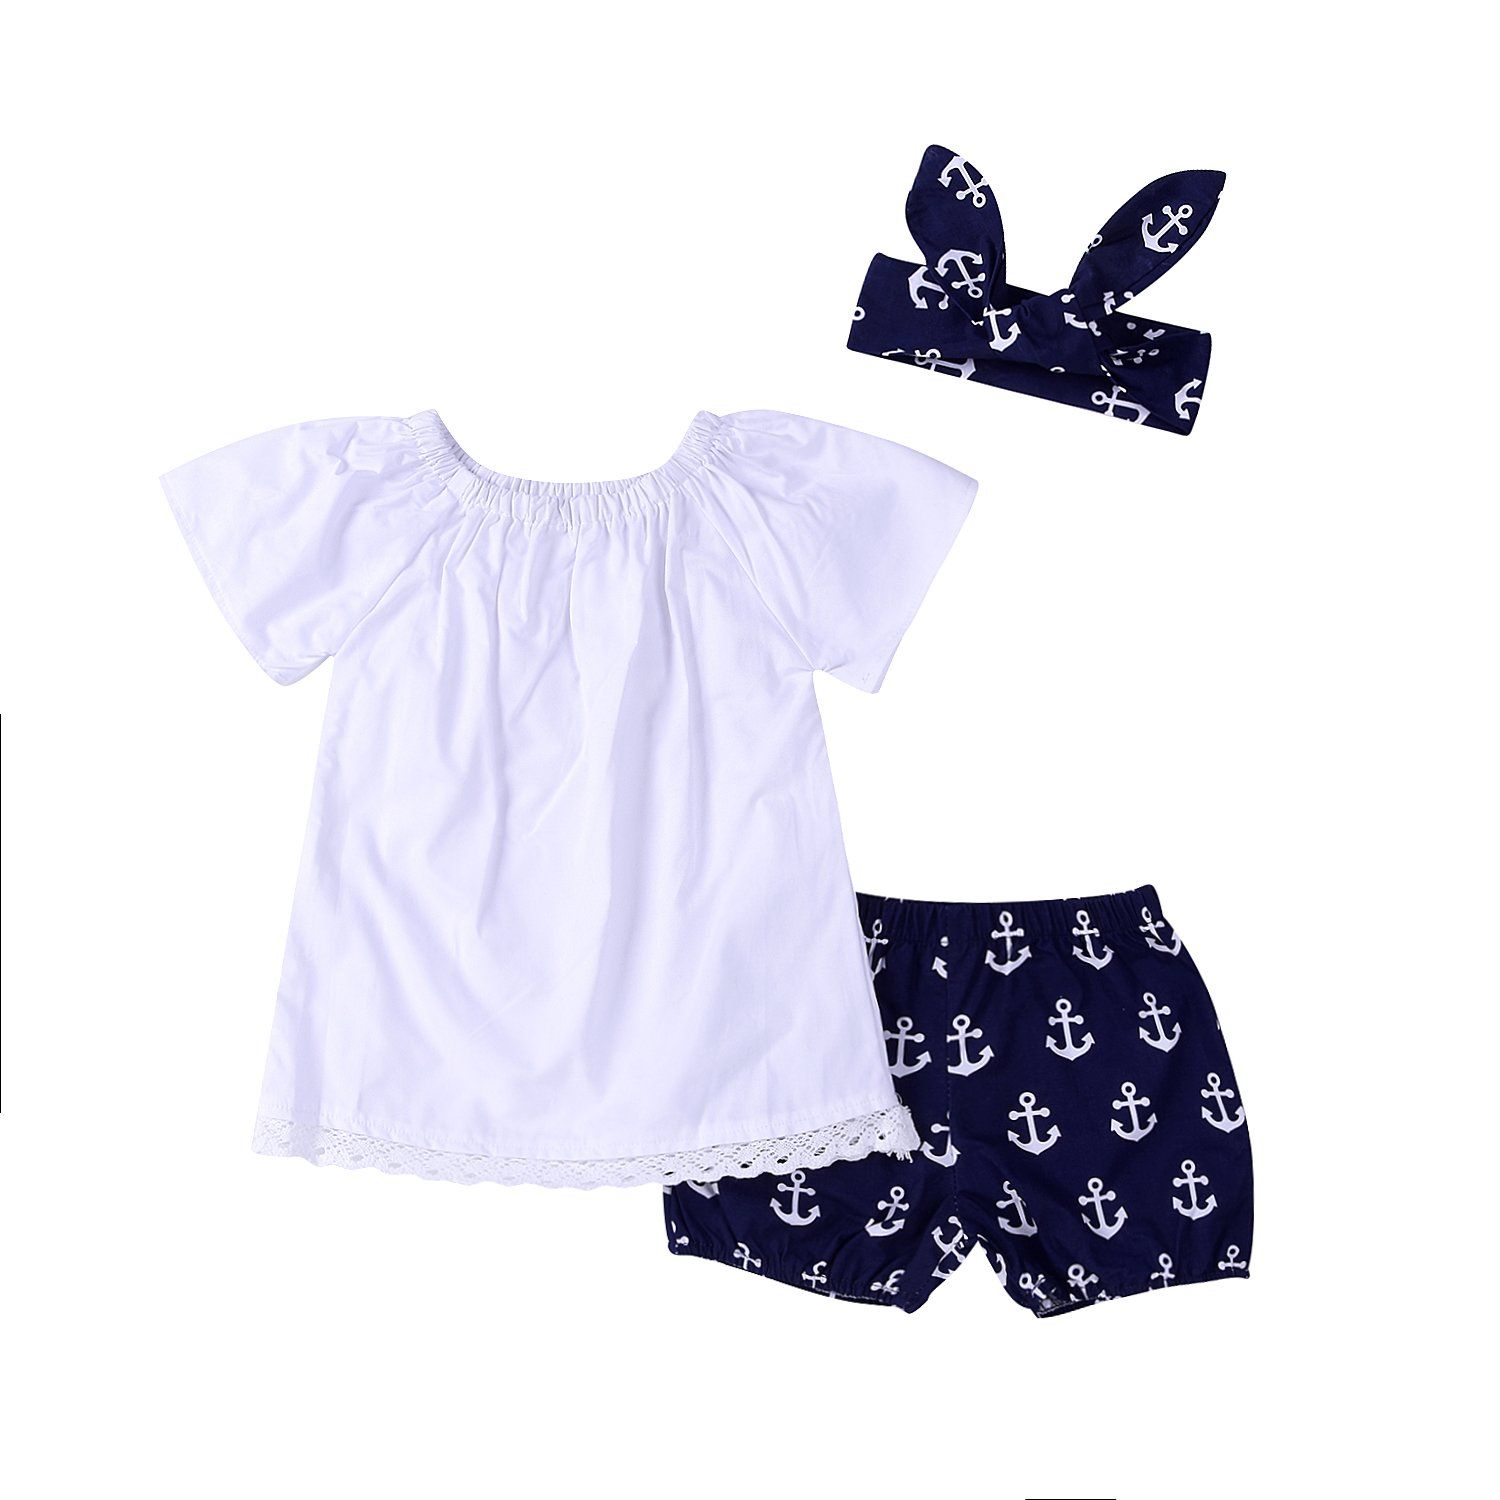 254da6608bef 3Pcs Baby Girls Short Sleeve Lace Tops Anchor Pants with Headband ...